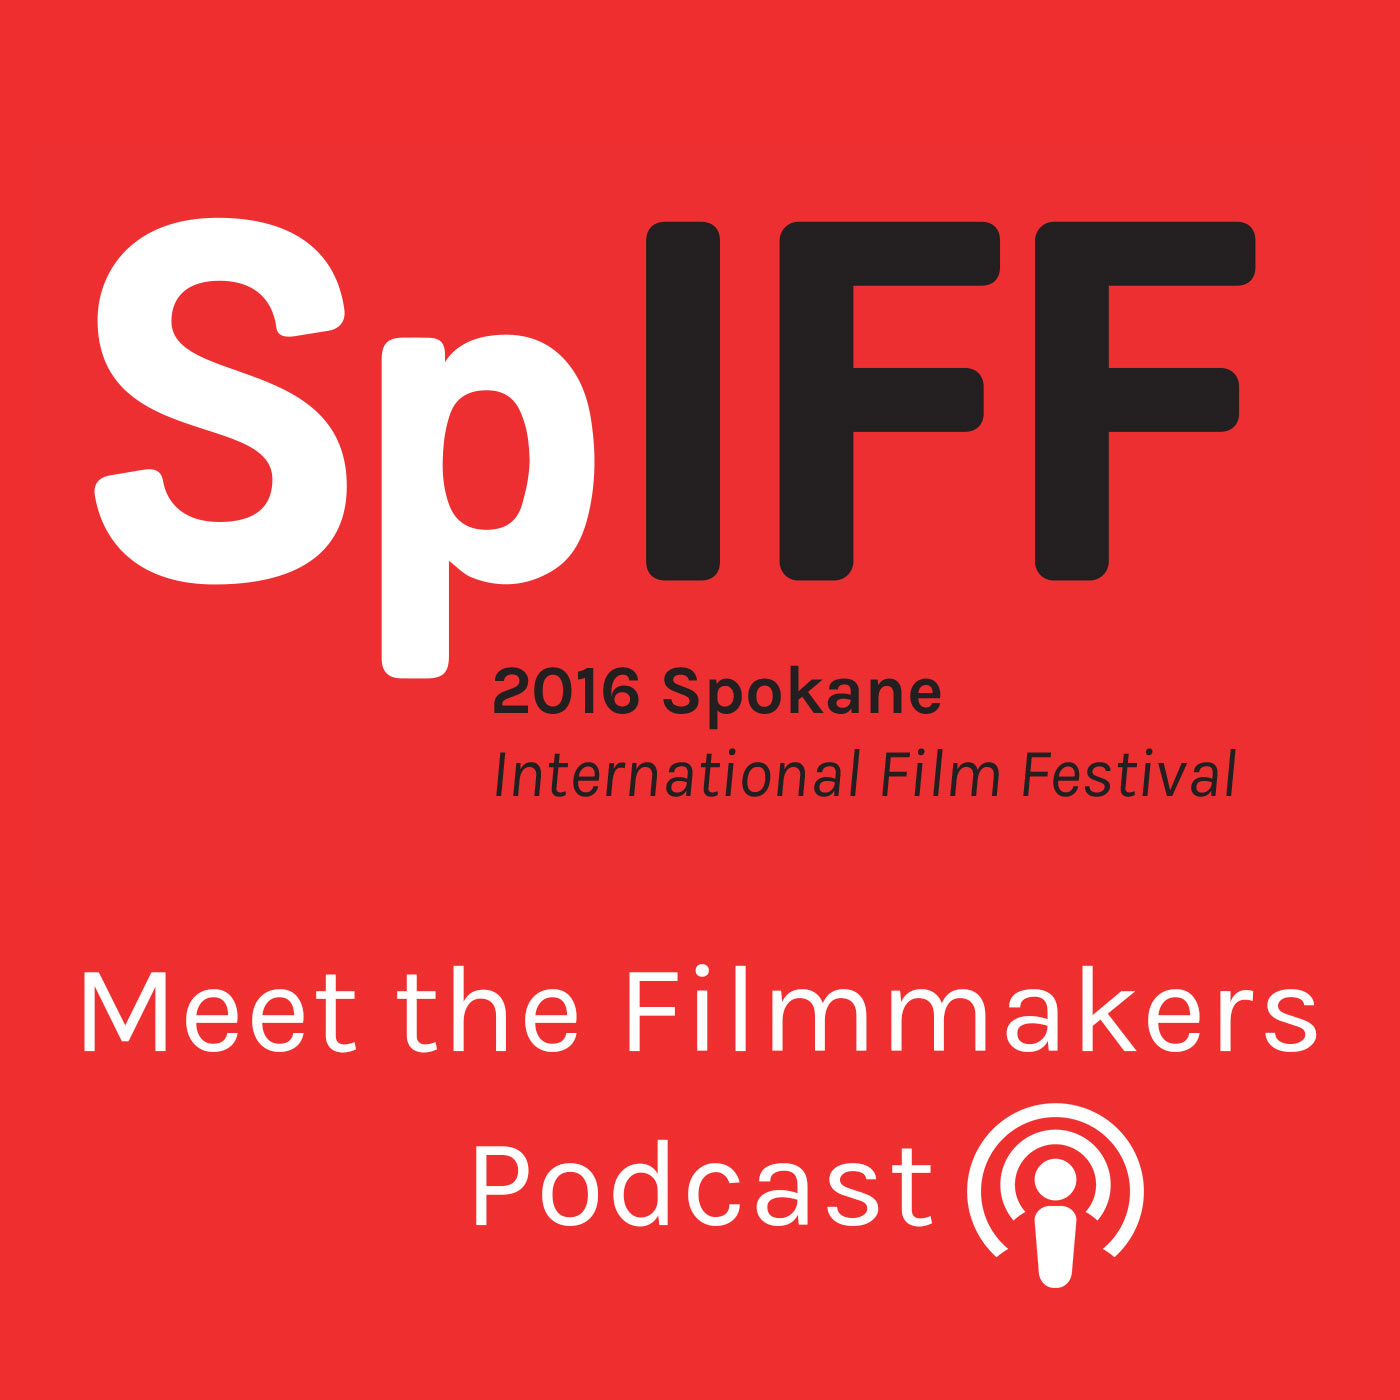 Meet the Filmmakers Podcast on iTunes